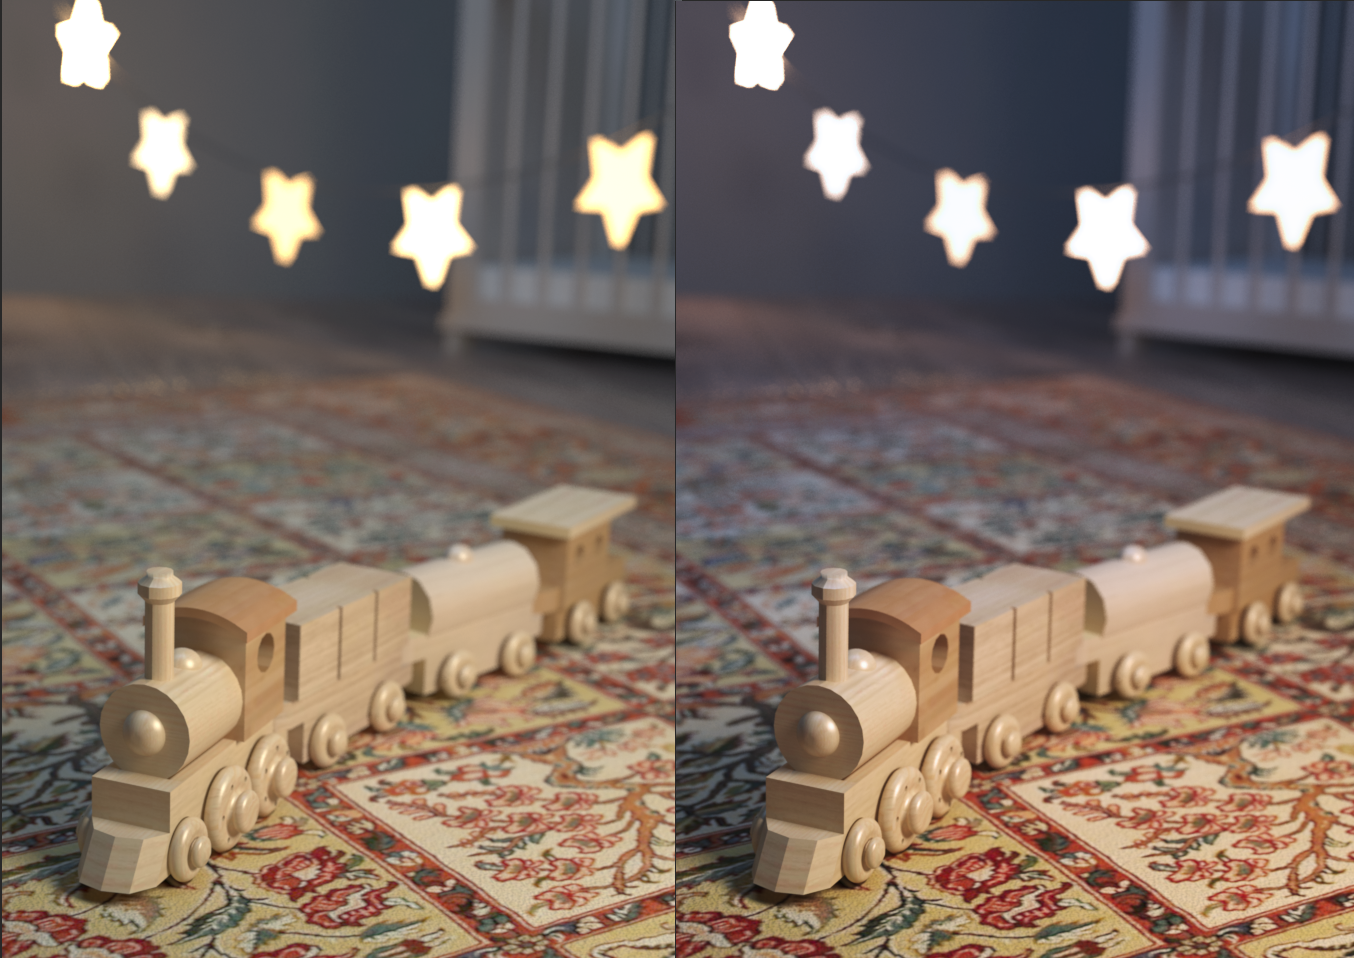 21_compositing_comparision